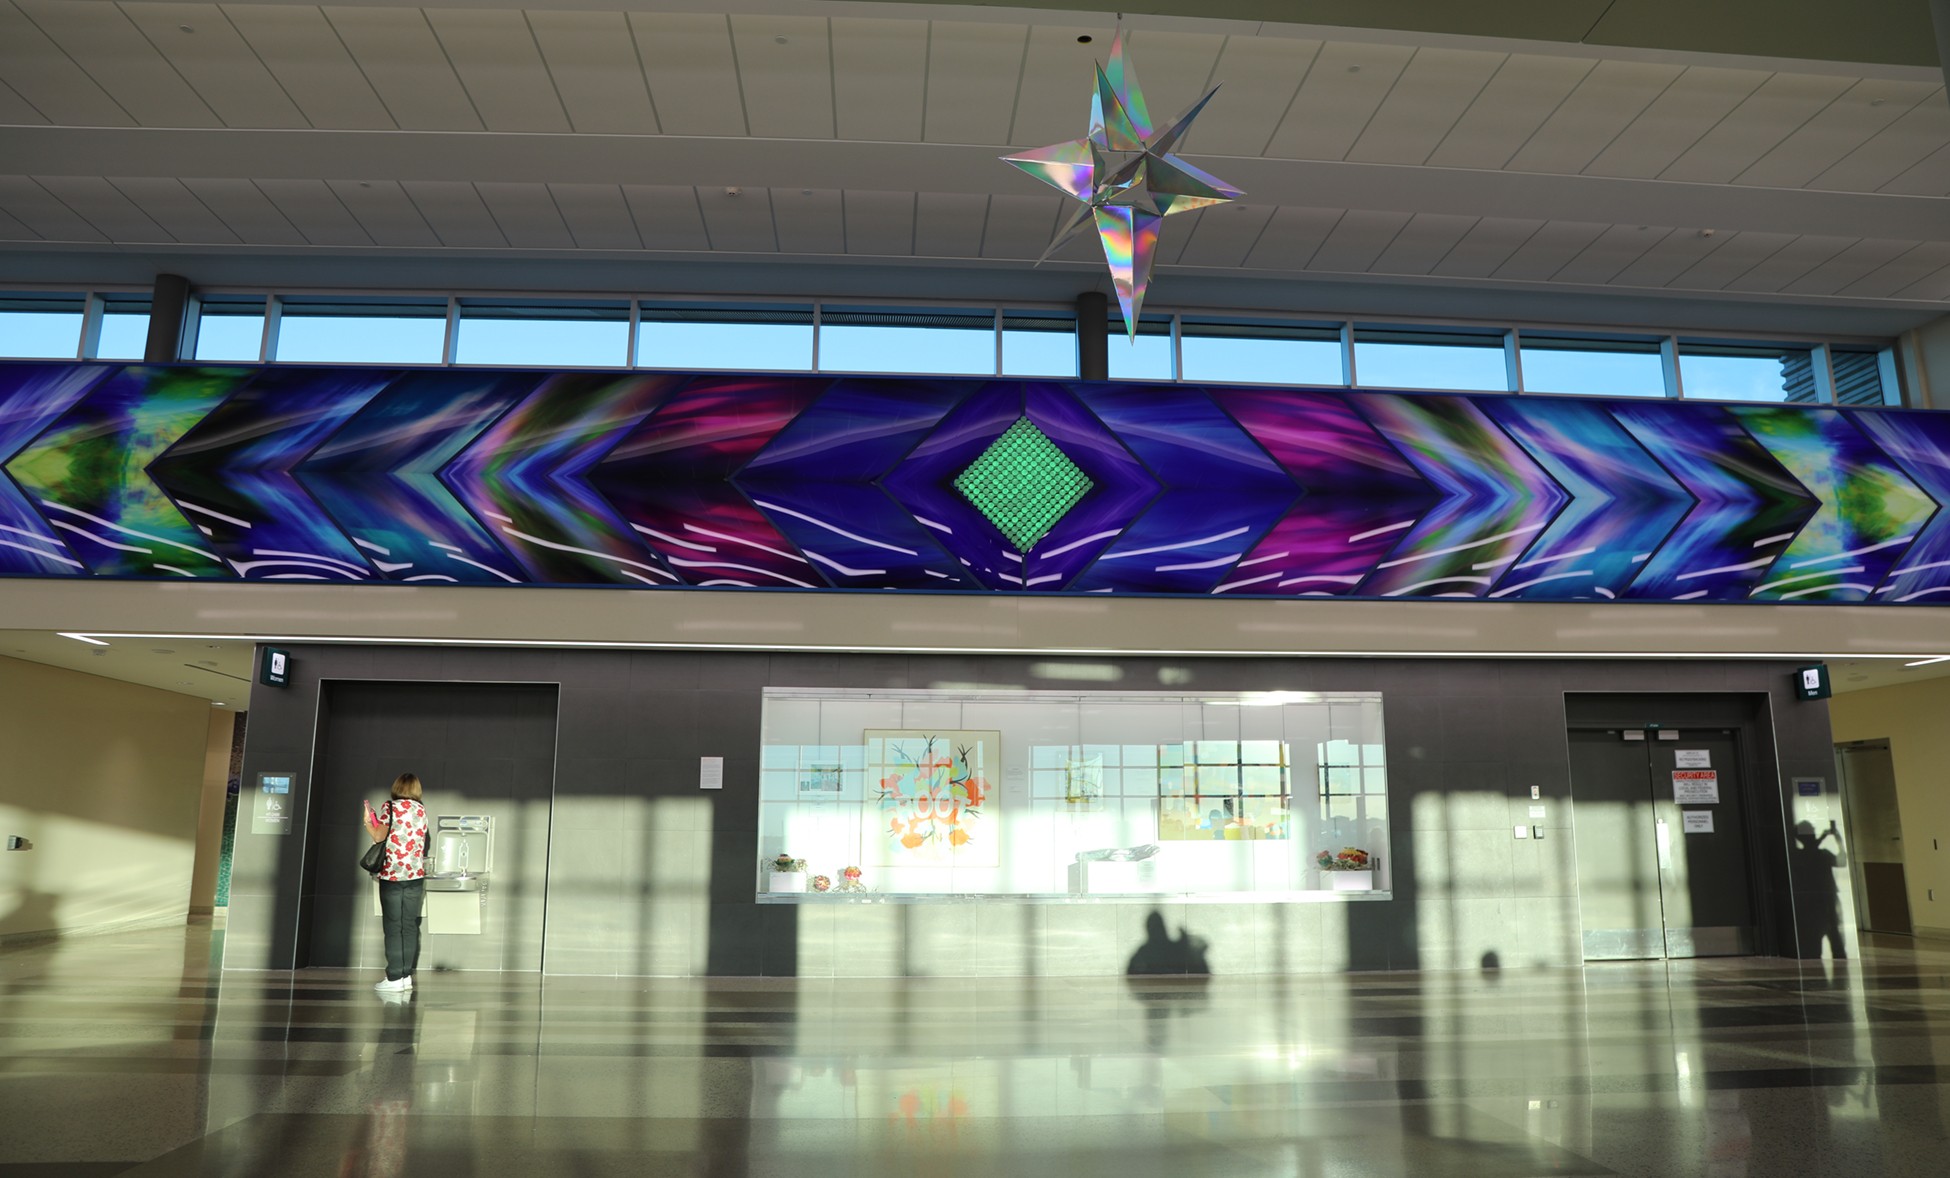 Aurora Borealis, brings the colors of the Northern Lights to life in the airport. The Aurora Borealis wall is 60 feet long by 6 feet tall. In the very middle of this sixty-foot long series of images is a rainbow diamond made of clear acrylic rods and lit with LED color lights that go through the colors of the rainbow.